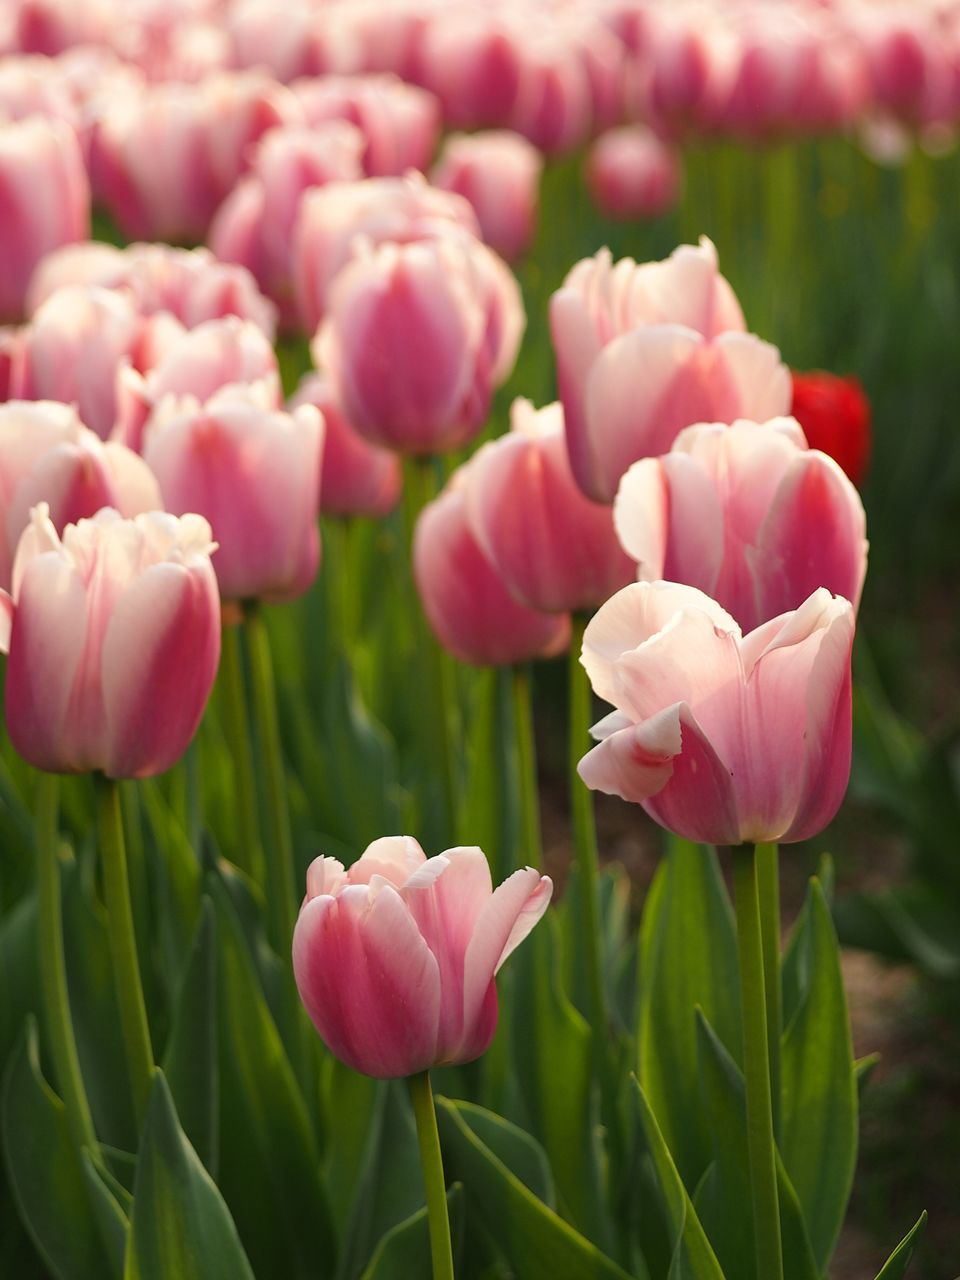 Pink Tulips Blooming On Field